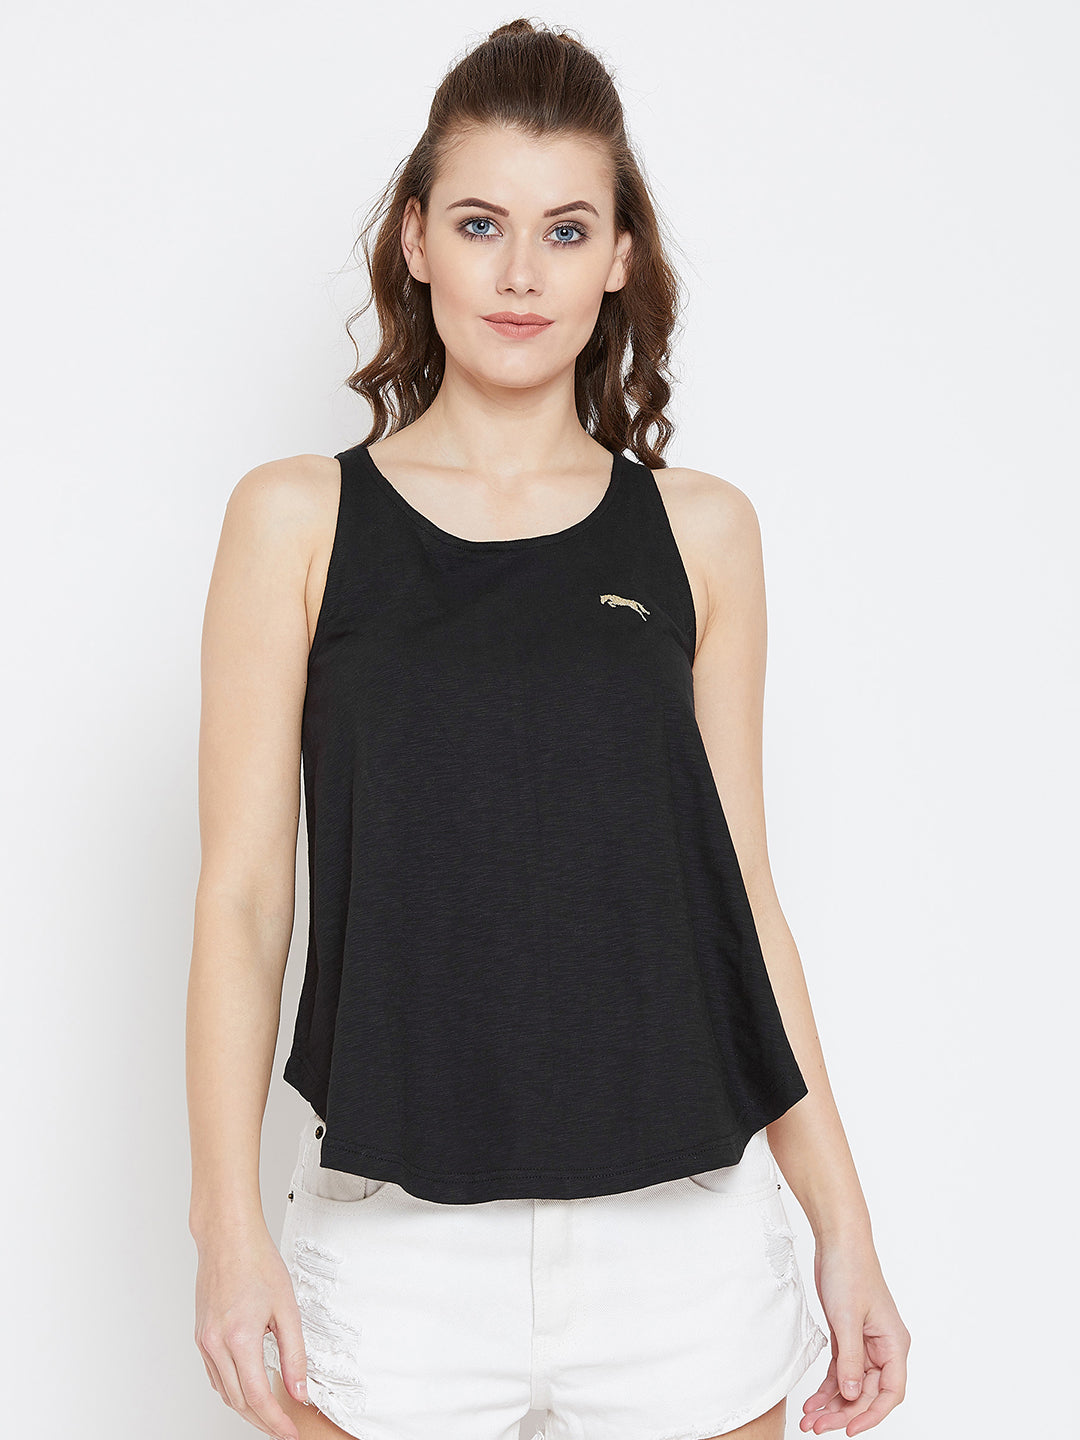 JUMP USA Women Black Solid Tank Top - JUMP USA